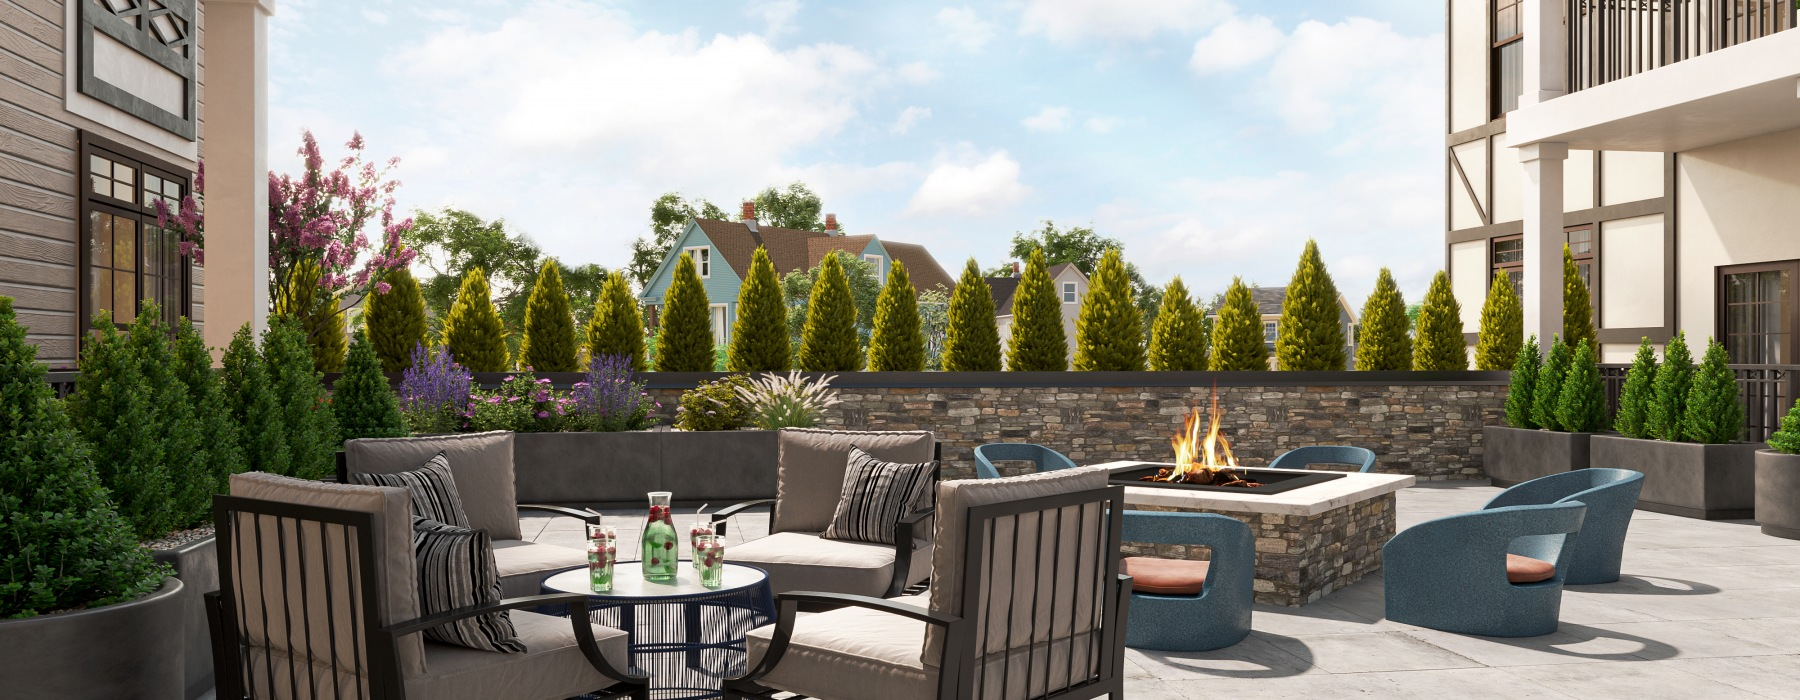 outdoor courtyard with fire pit and seating area